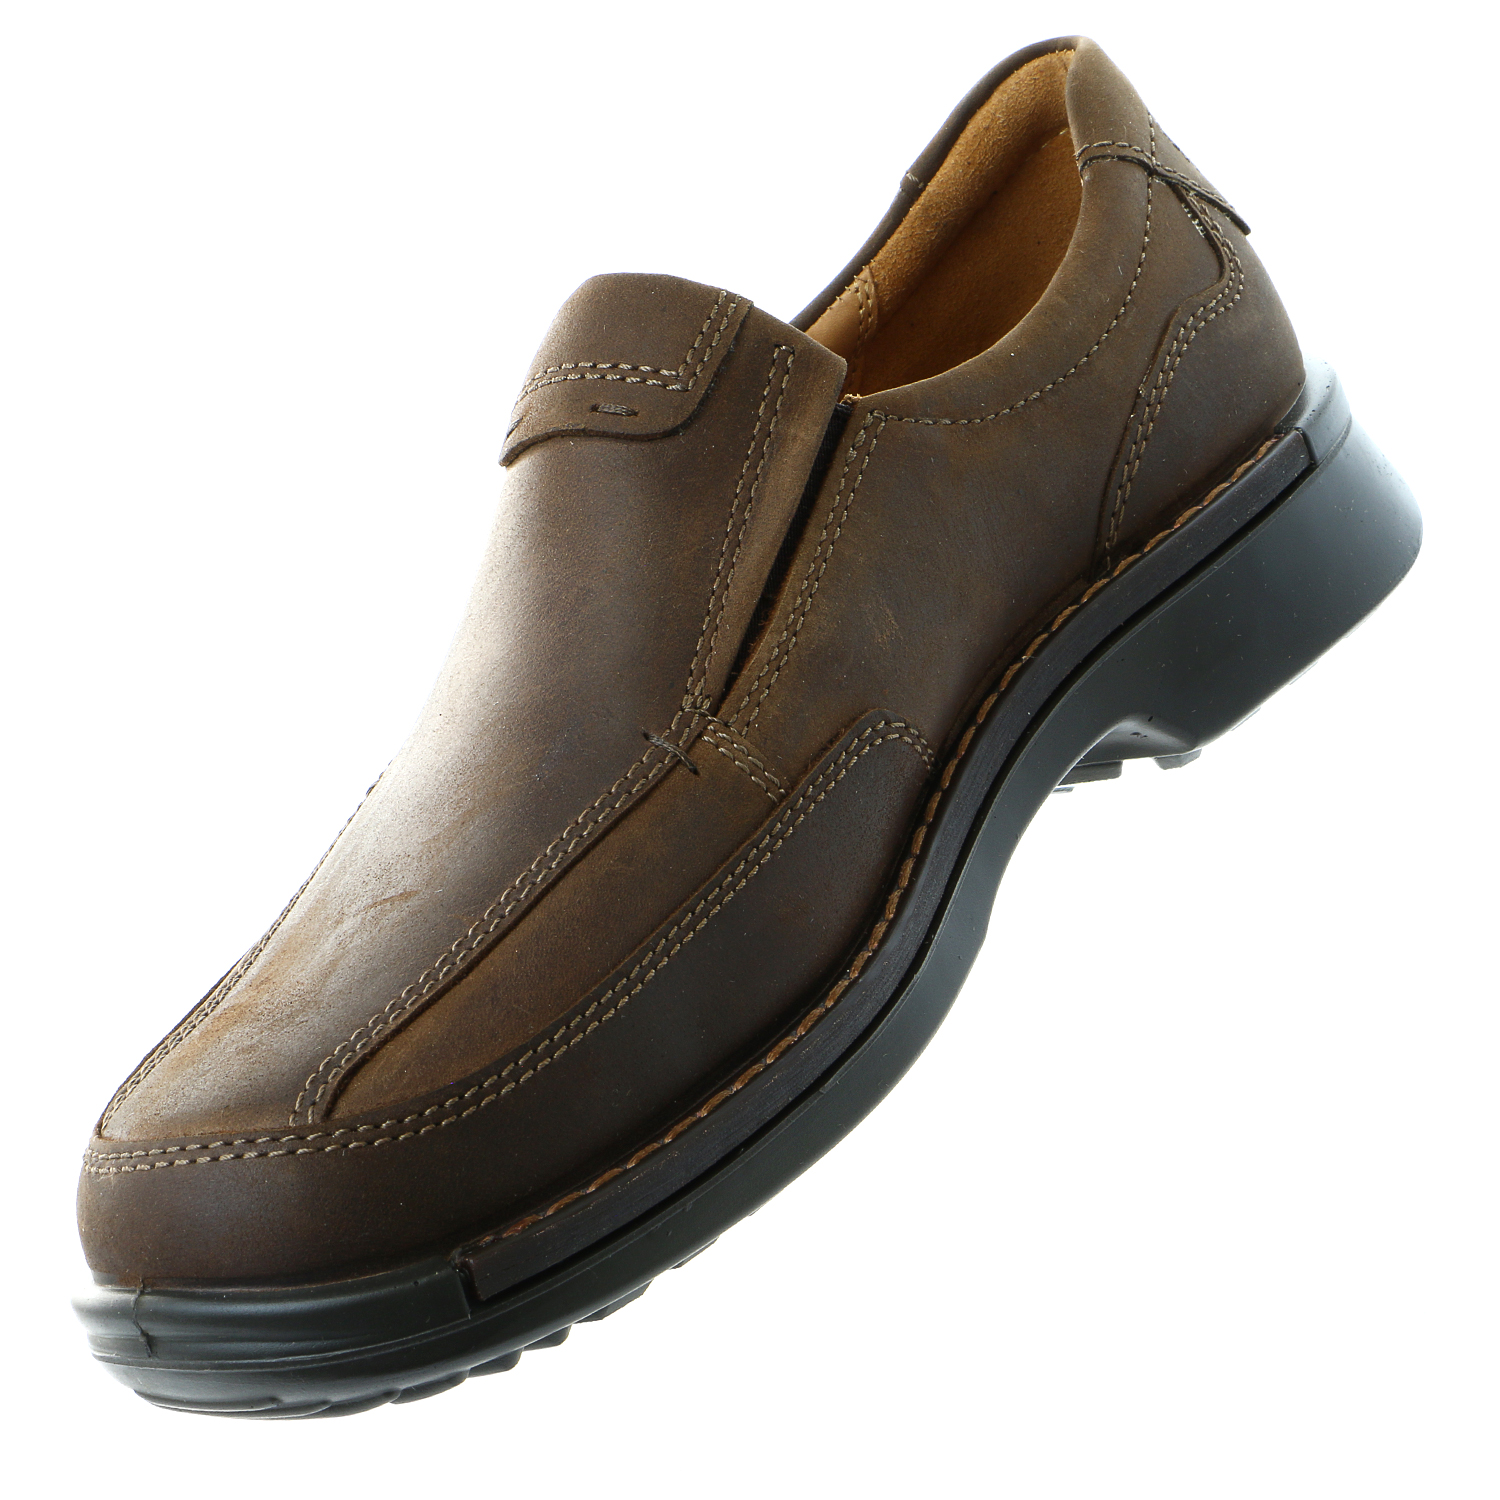 Ecco Fusion Slip-On Loafer Shoe - Cocoa Brown (Mens)